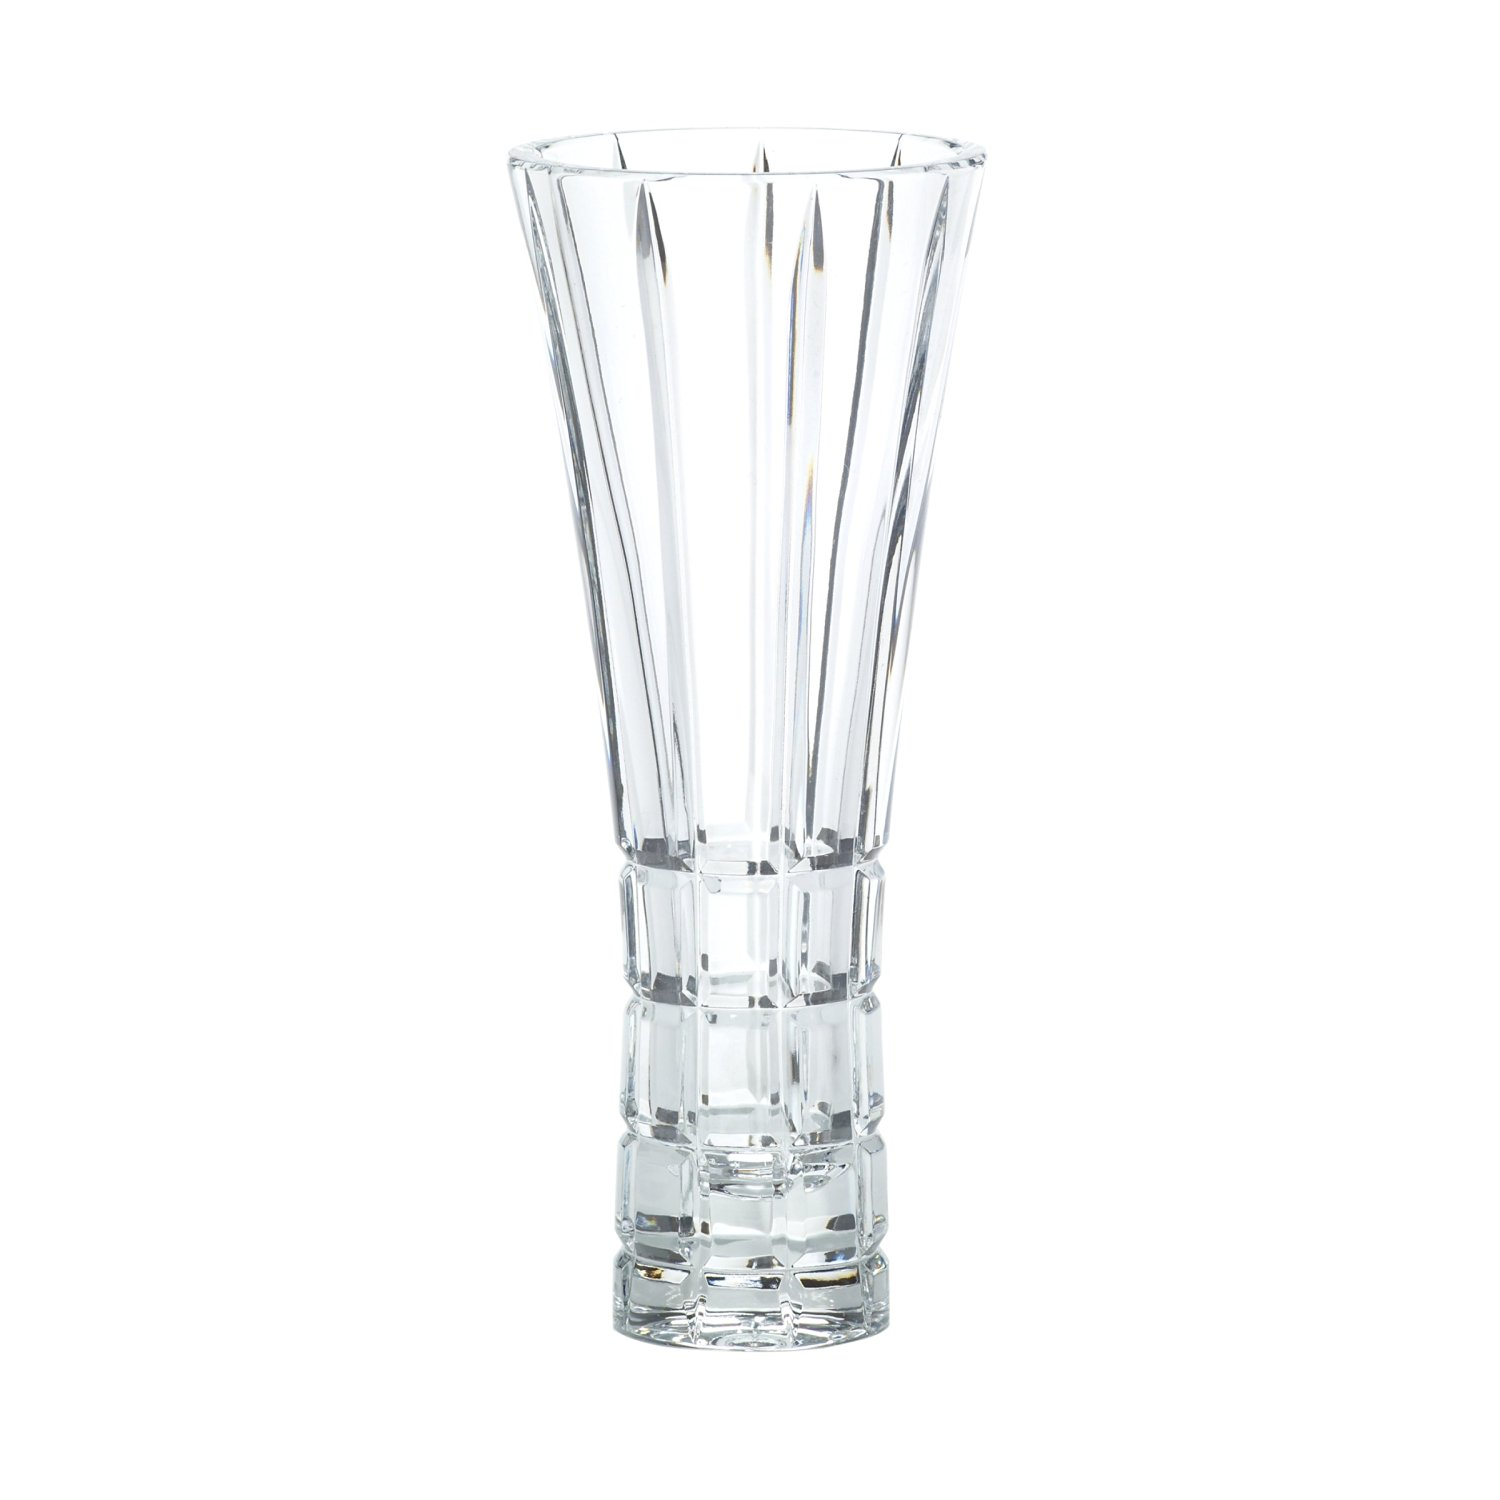 Cheap double bud vase find double bud vase deals on line at mikasa avenue crystal bud vase 8 inch reviewsmspy